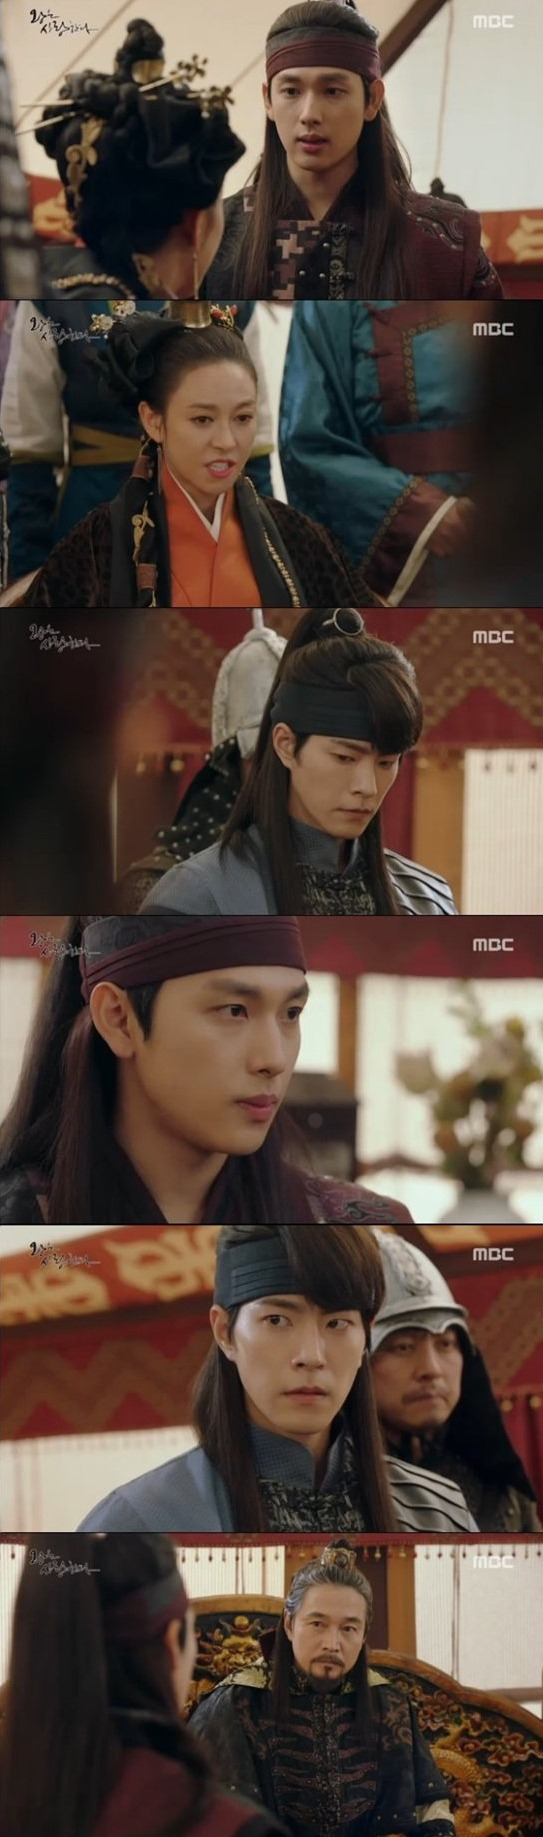 [Spoiler] Added episodes 7 and 8 captures for the Korean drama 'The King Loves'